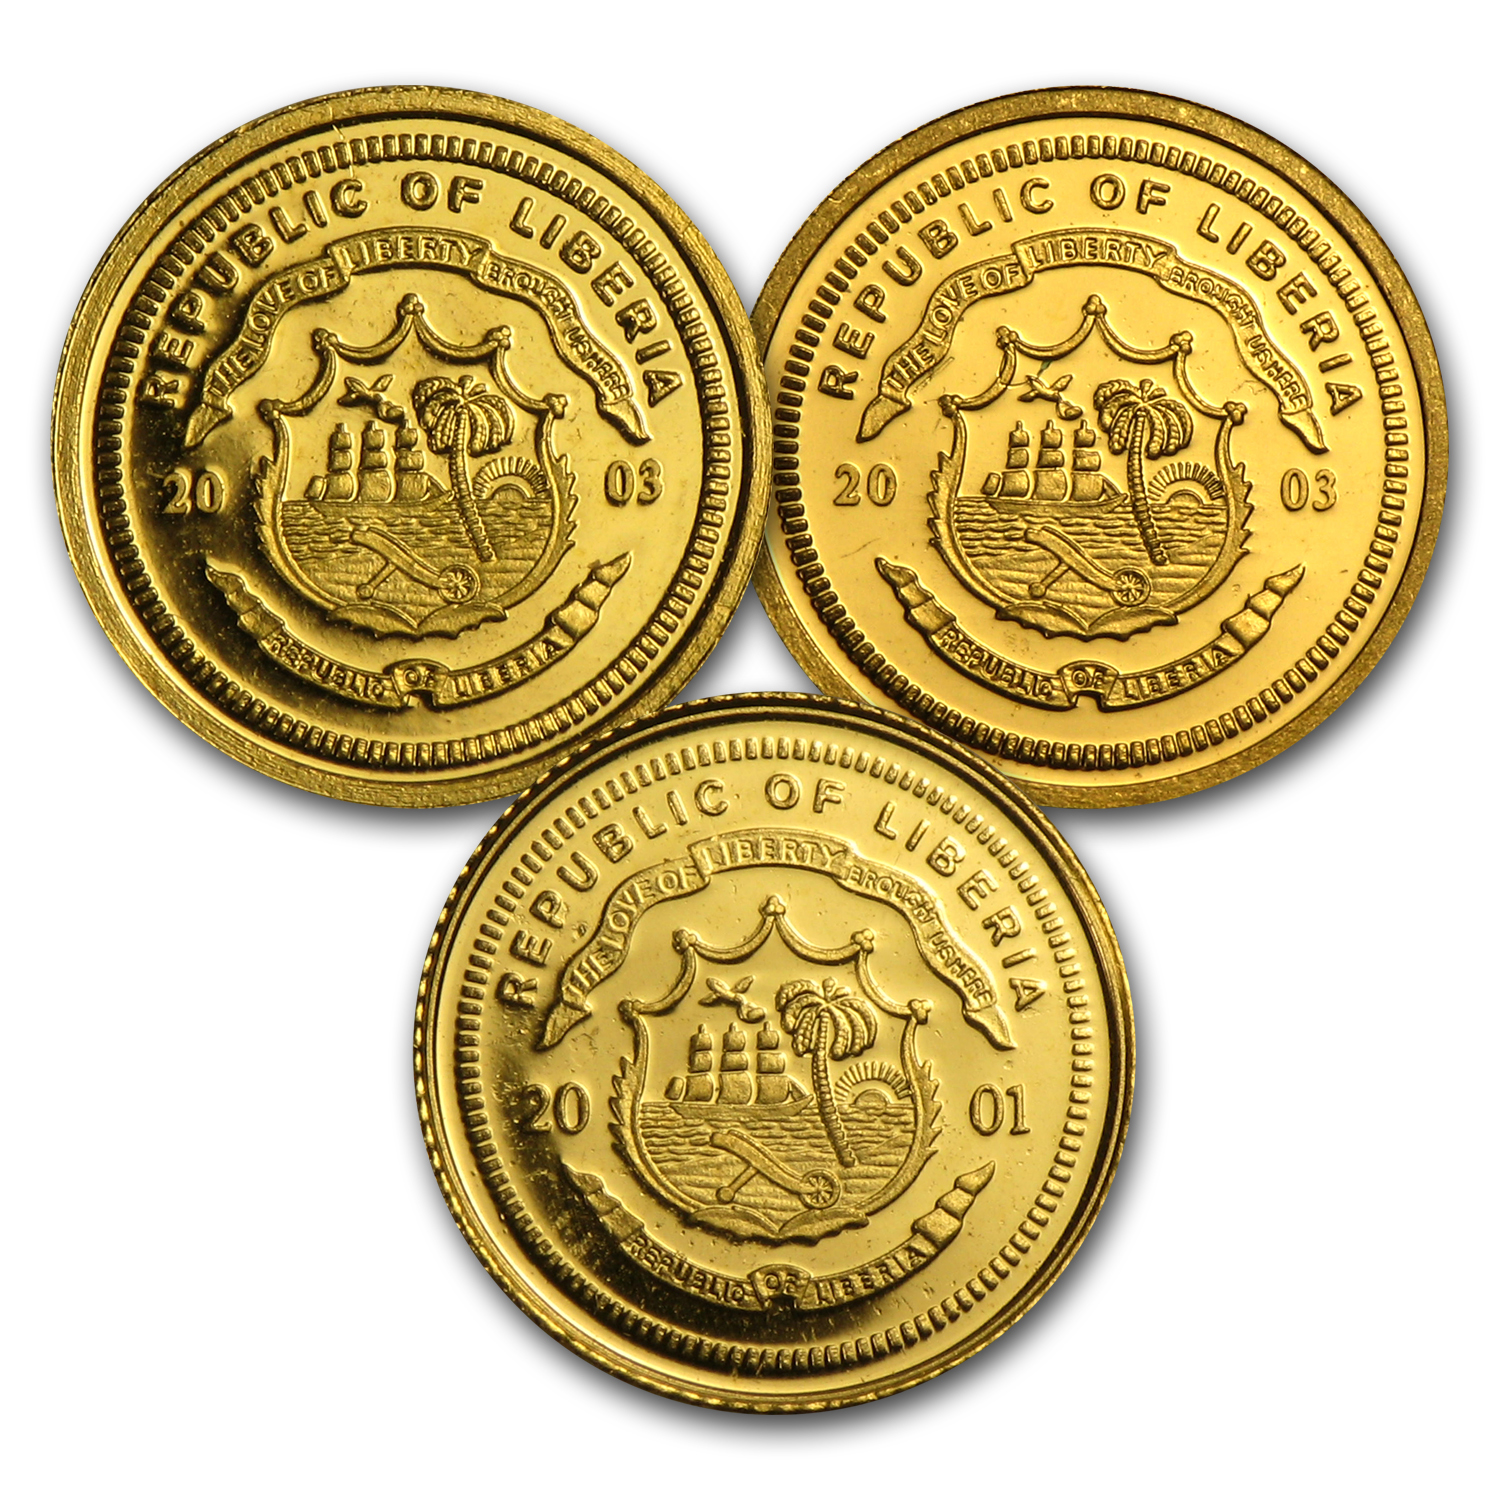 Liberia Proof Gold $25 (Random Dates)